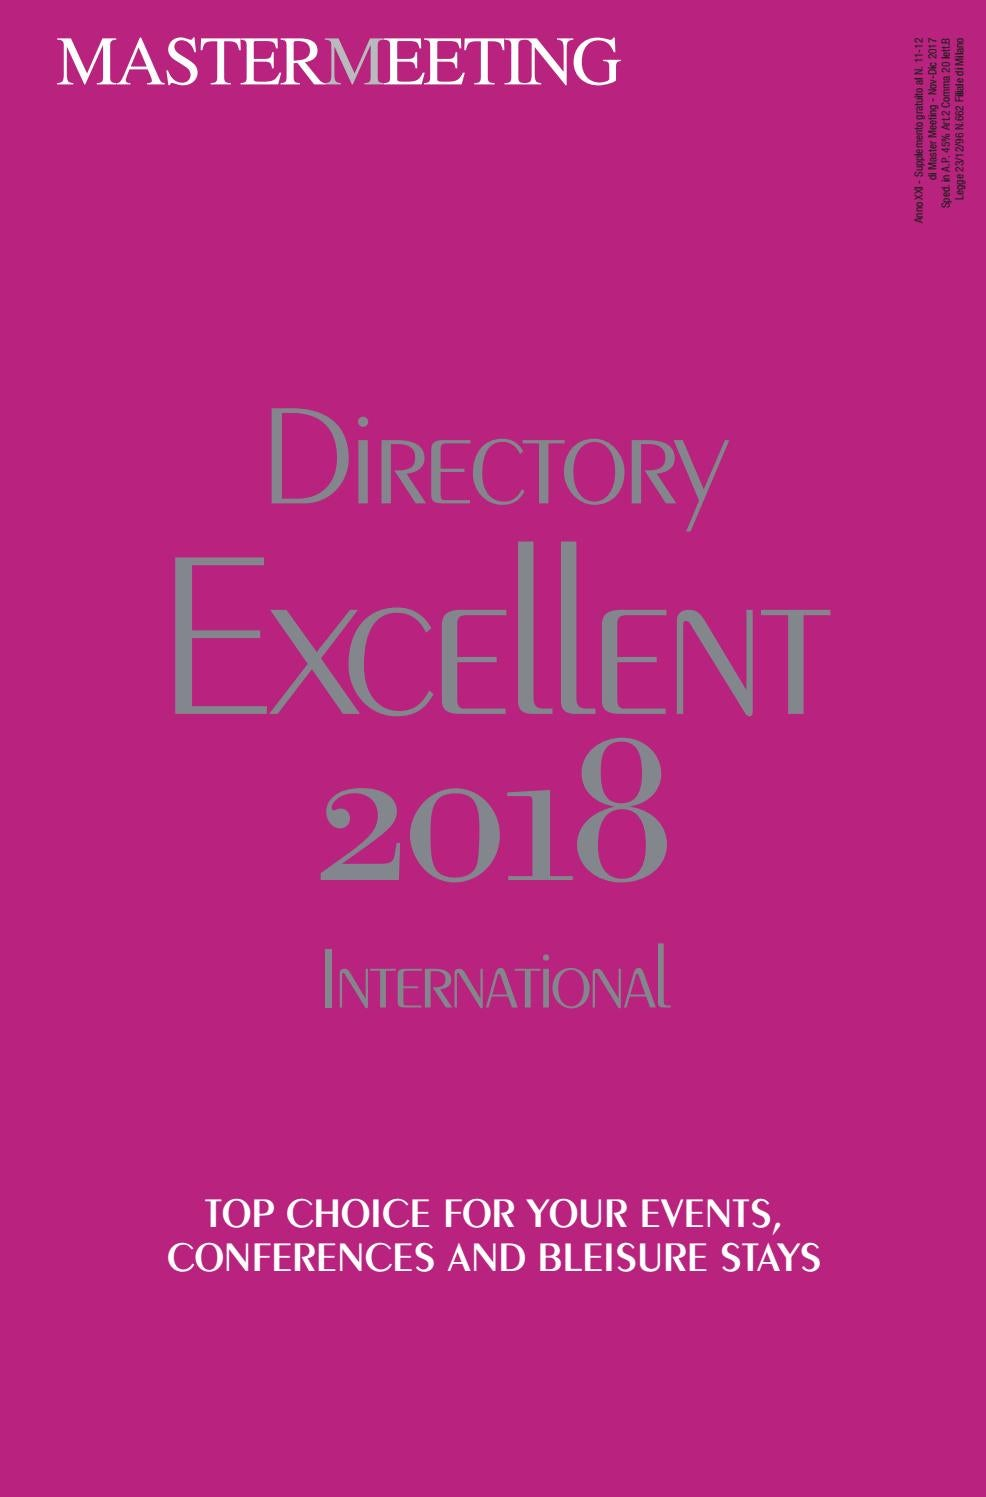 Directory Excellent 2018 by Master Meeting - issuu 900256a48f3